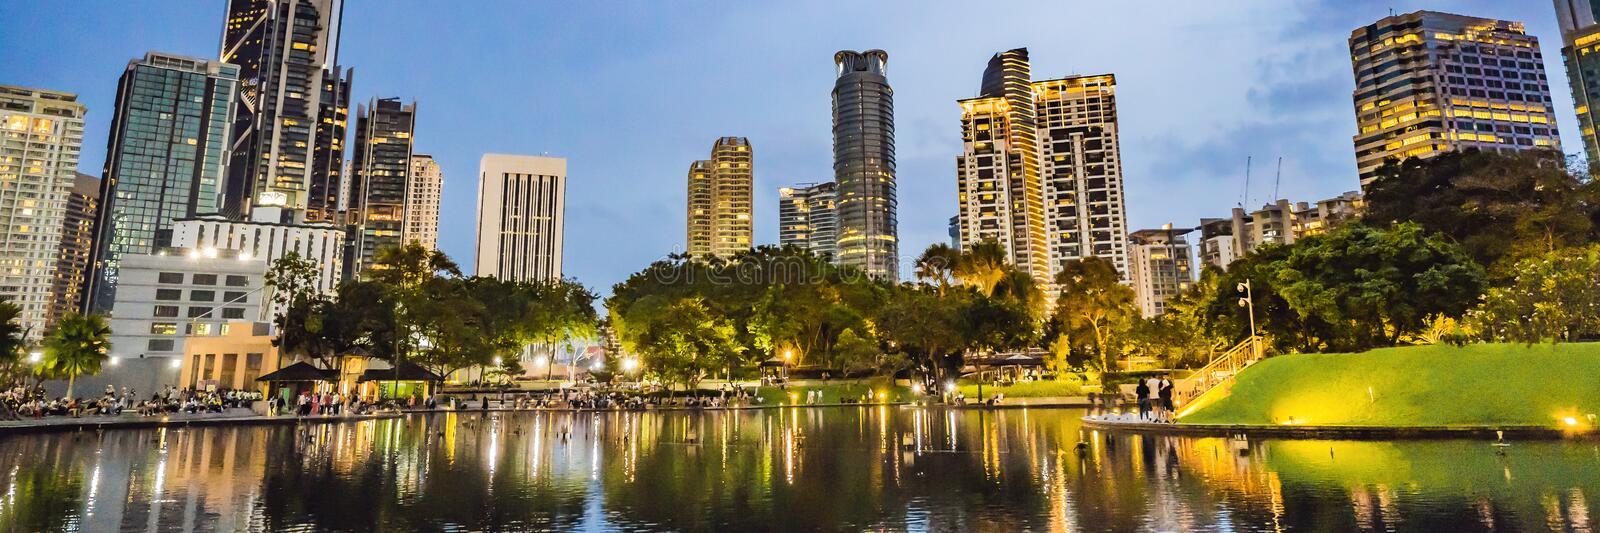 Lake in the evening, near by Twin Towers with city on background. Kuala Lumpur, Malaysia BANNER, LONG FORMAT stock photo